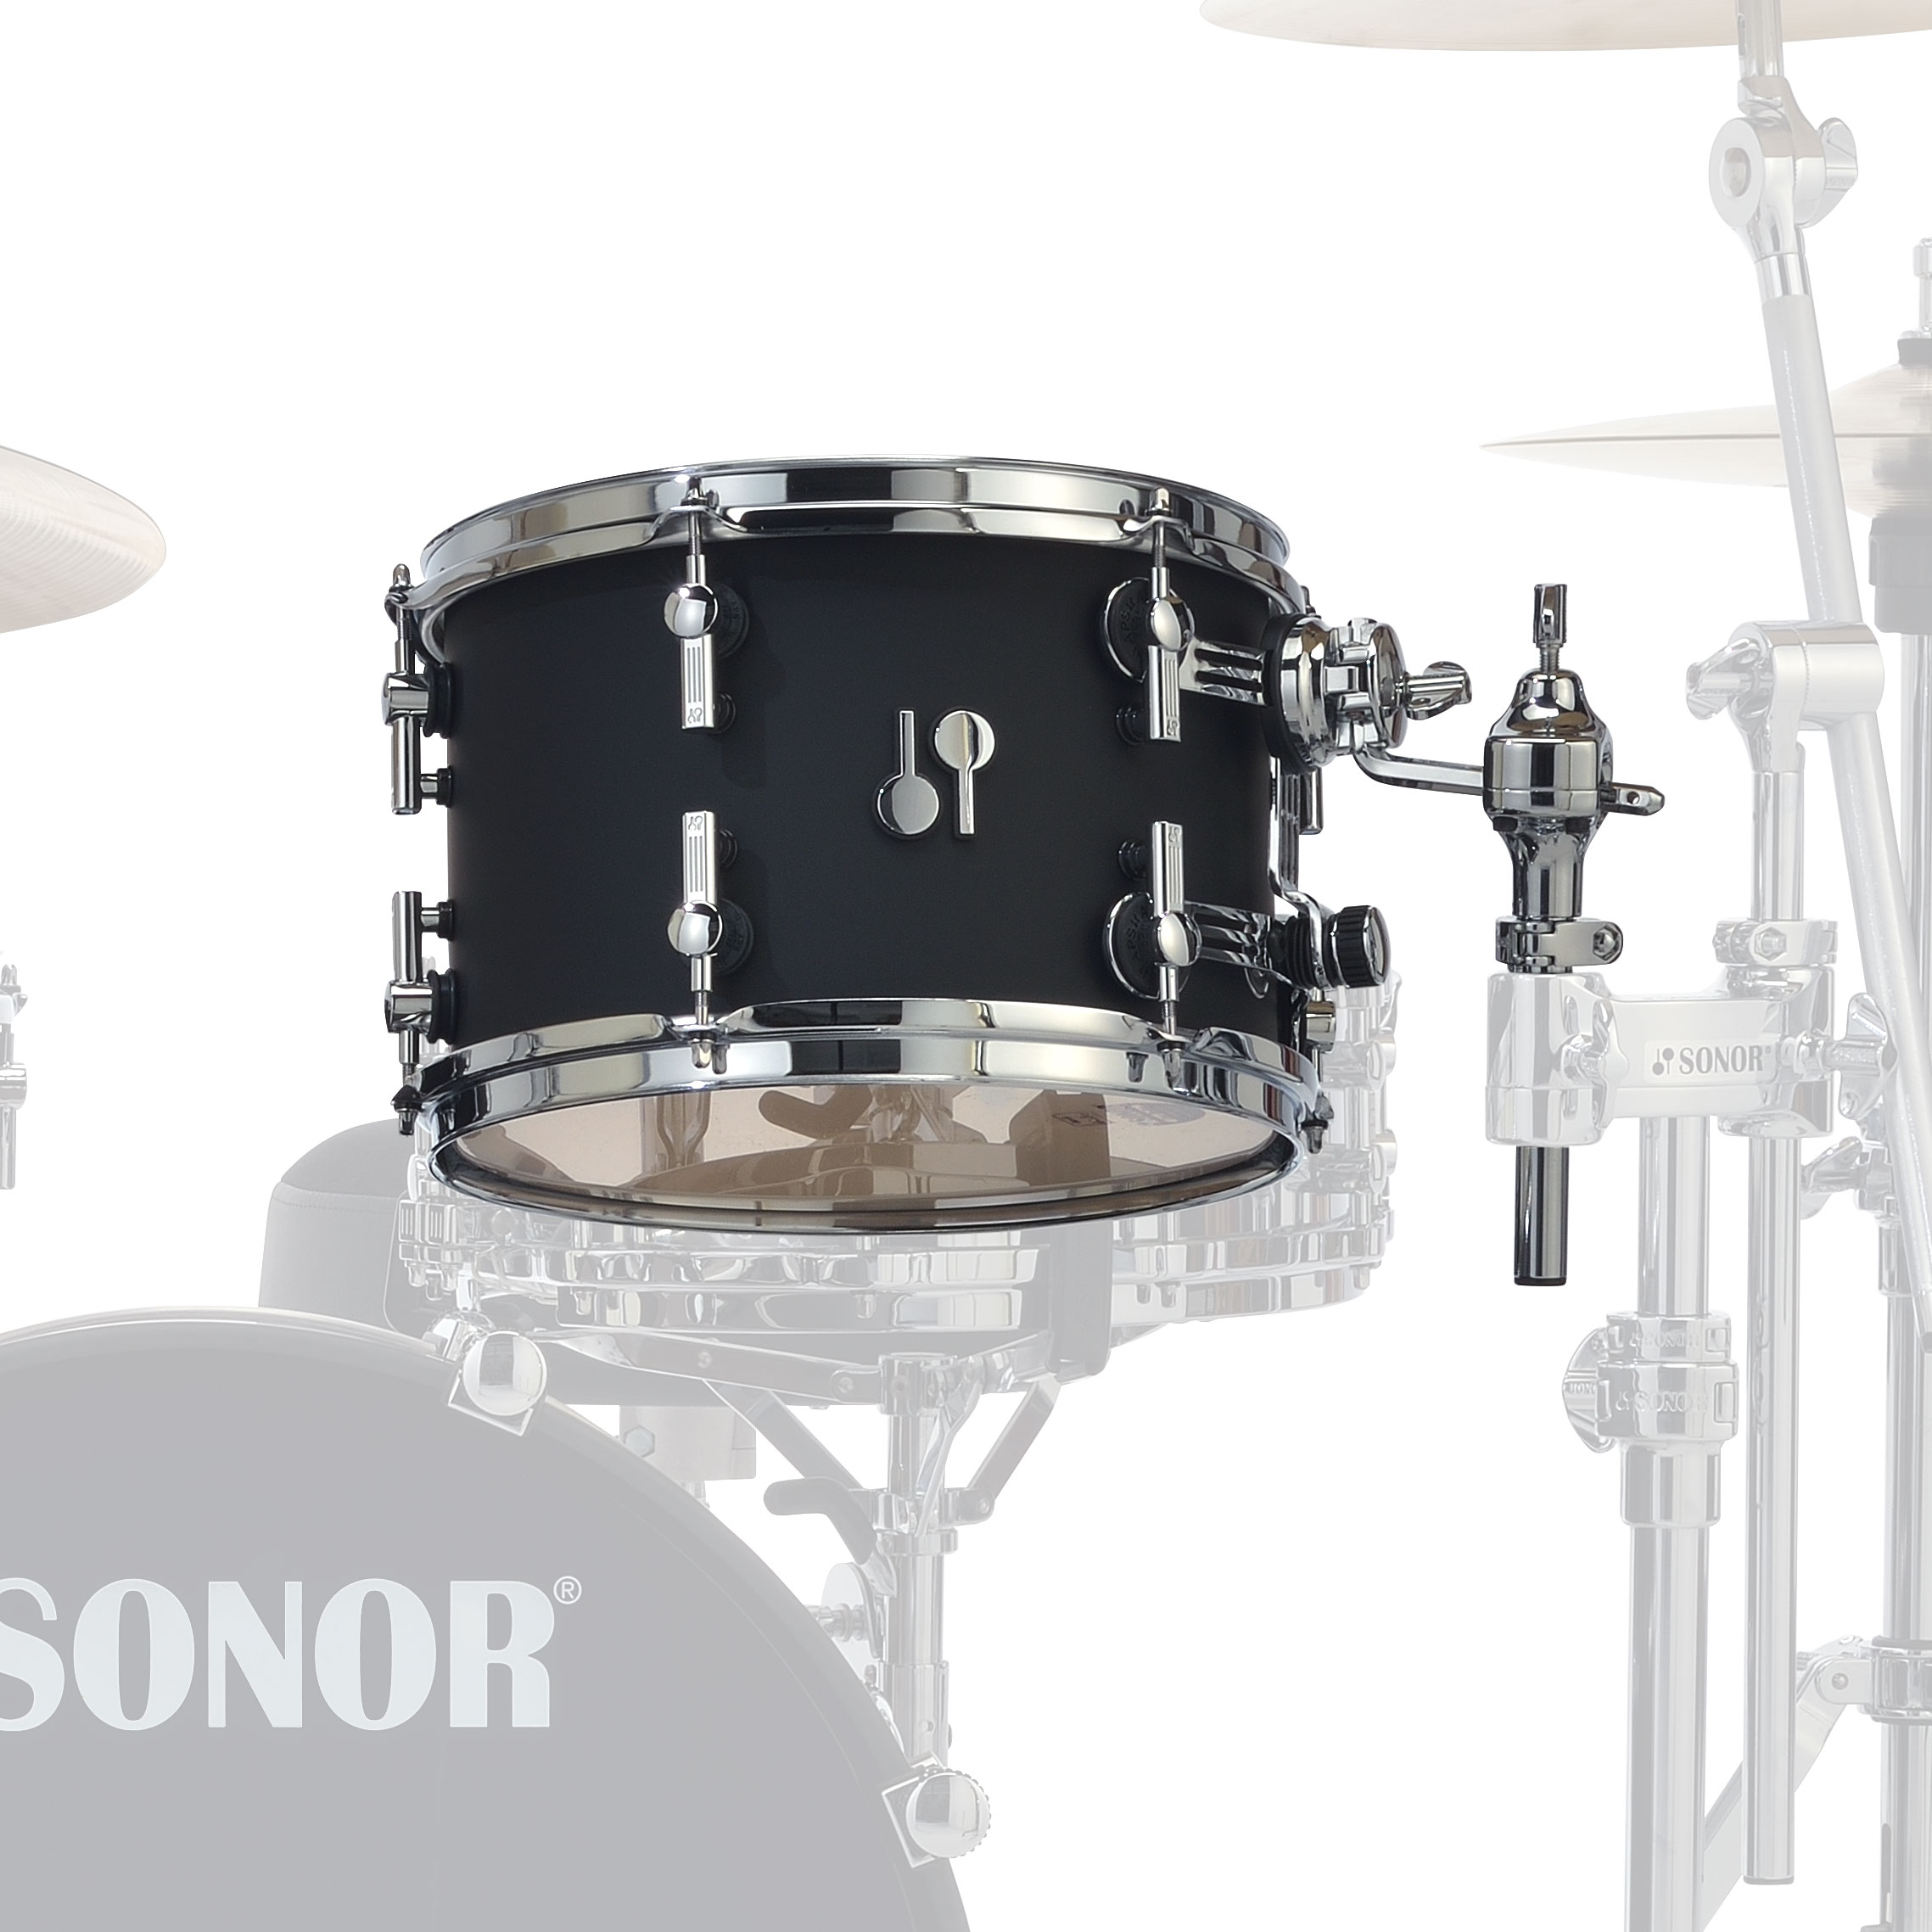 "Sonor 10"" (Diameter) x 7"" (Deep) SQ2 Vintage Maple Tom"